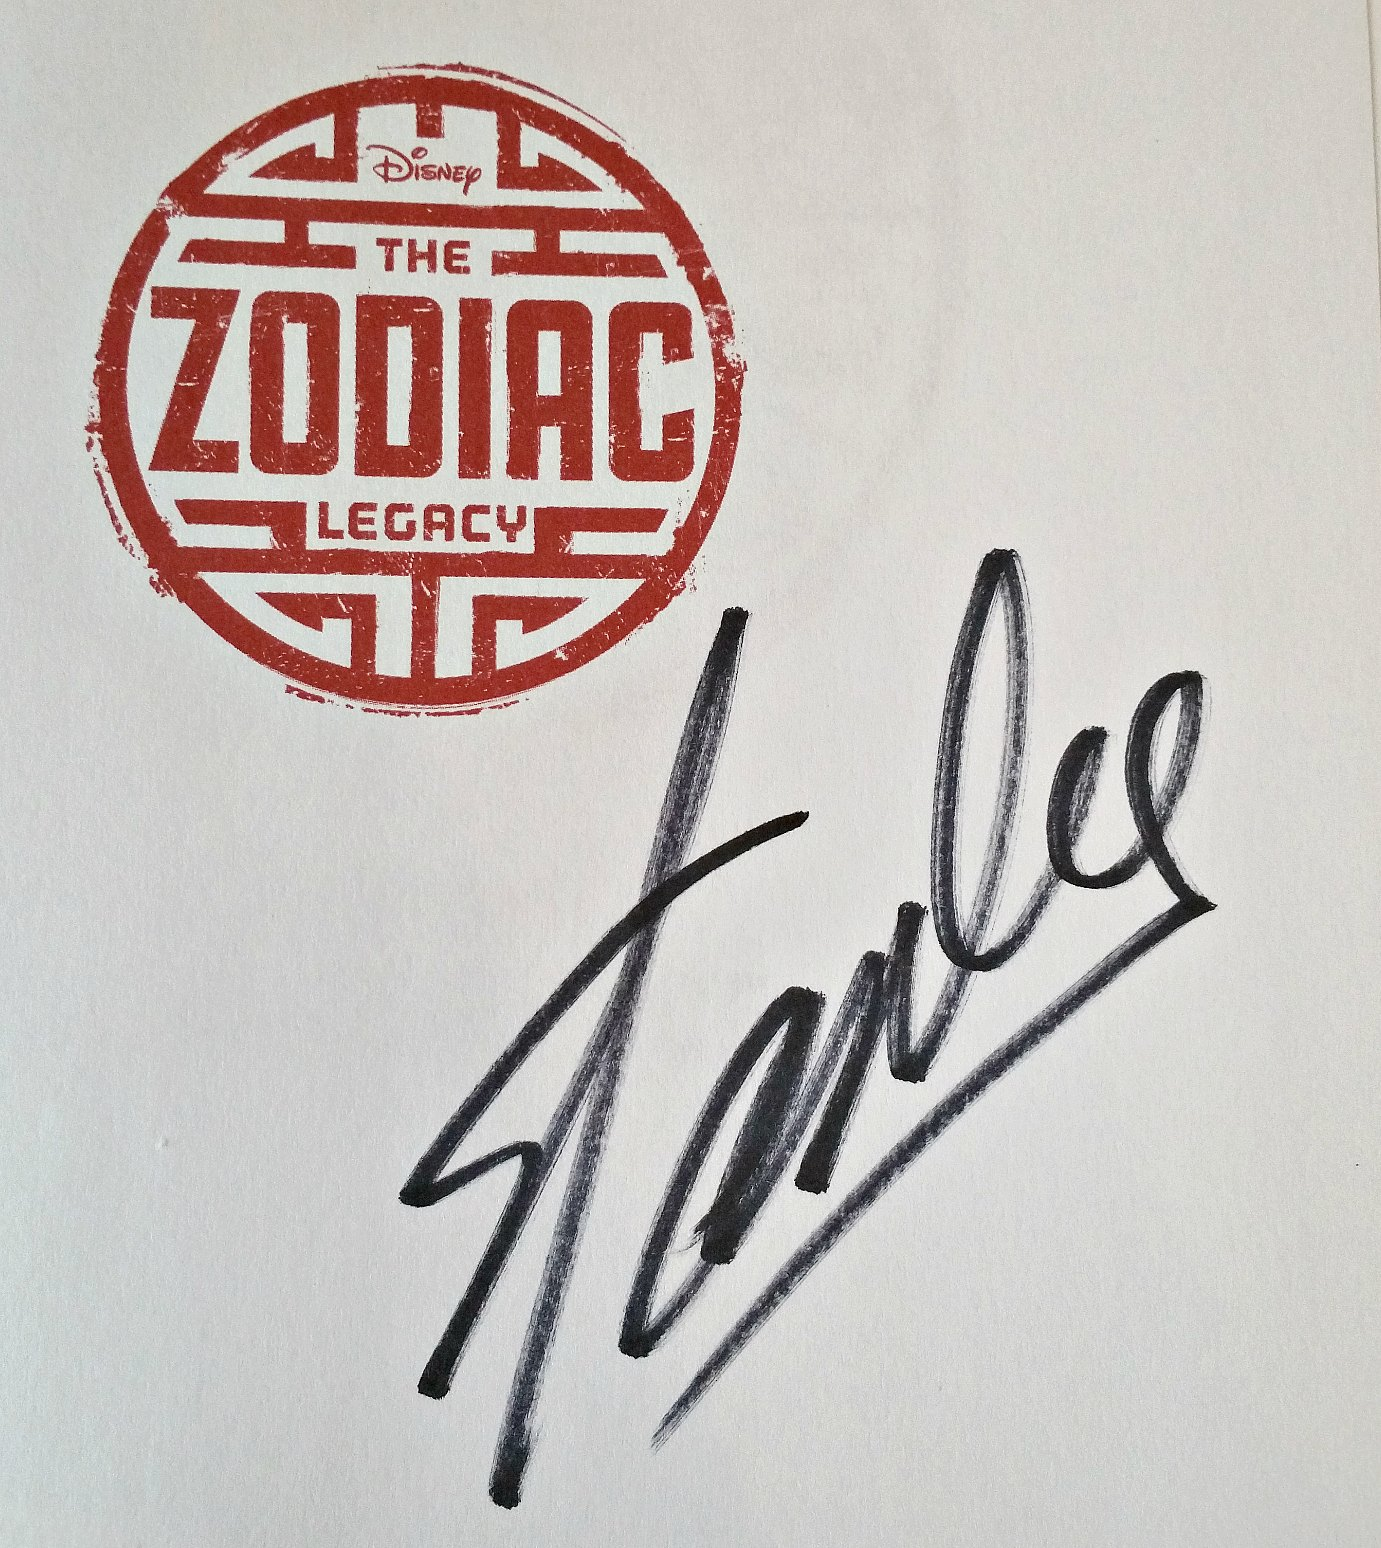 Stan Lee, Super Heroes teenager book, Disney's The Zodiac Legacy Convergence